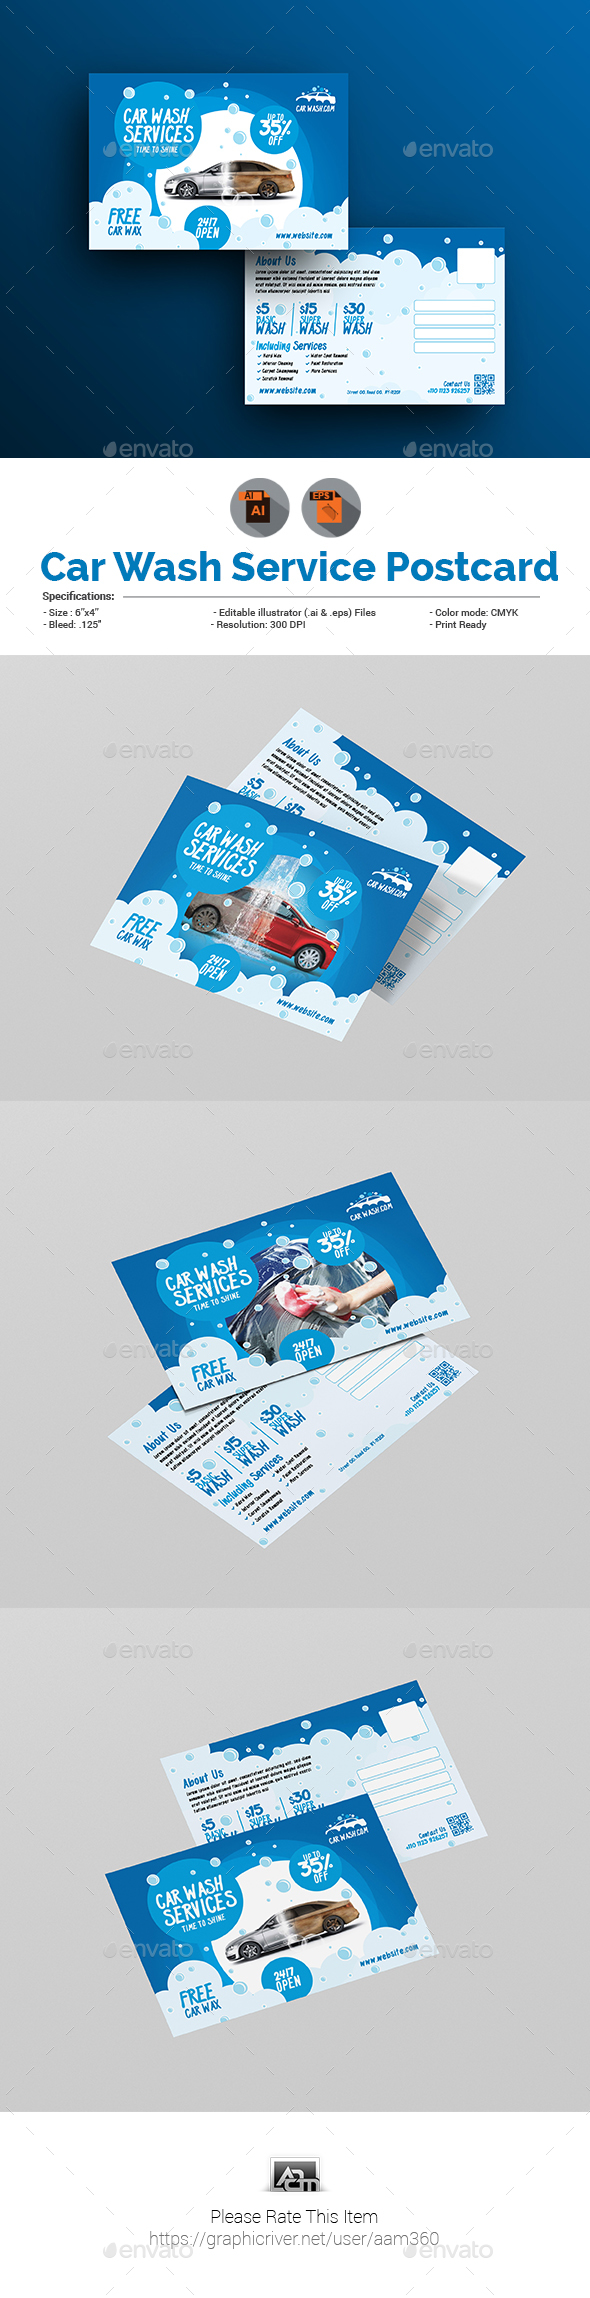 Car Wash Postcard Template - Cards & Invites Print Templates